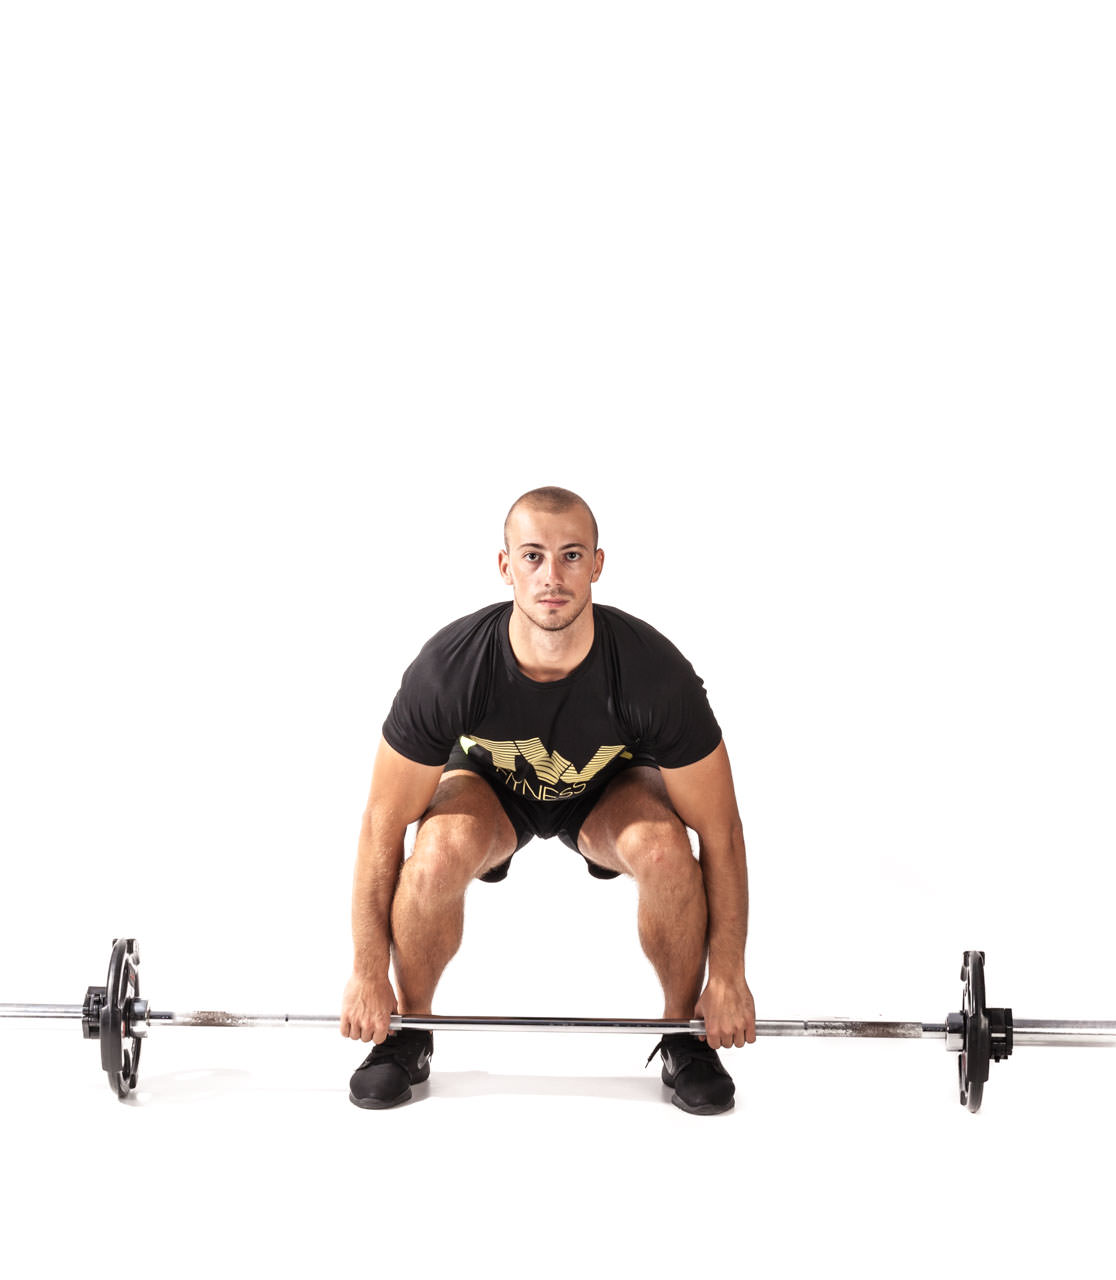 Barbell Clean frame #1